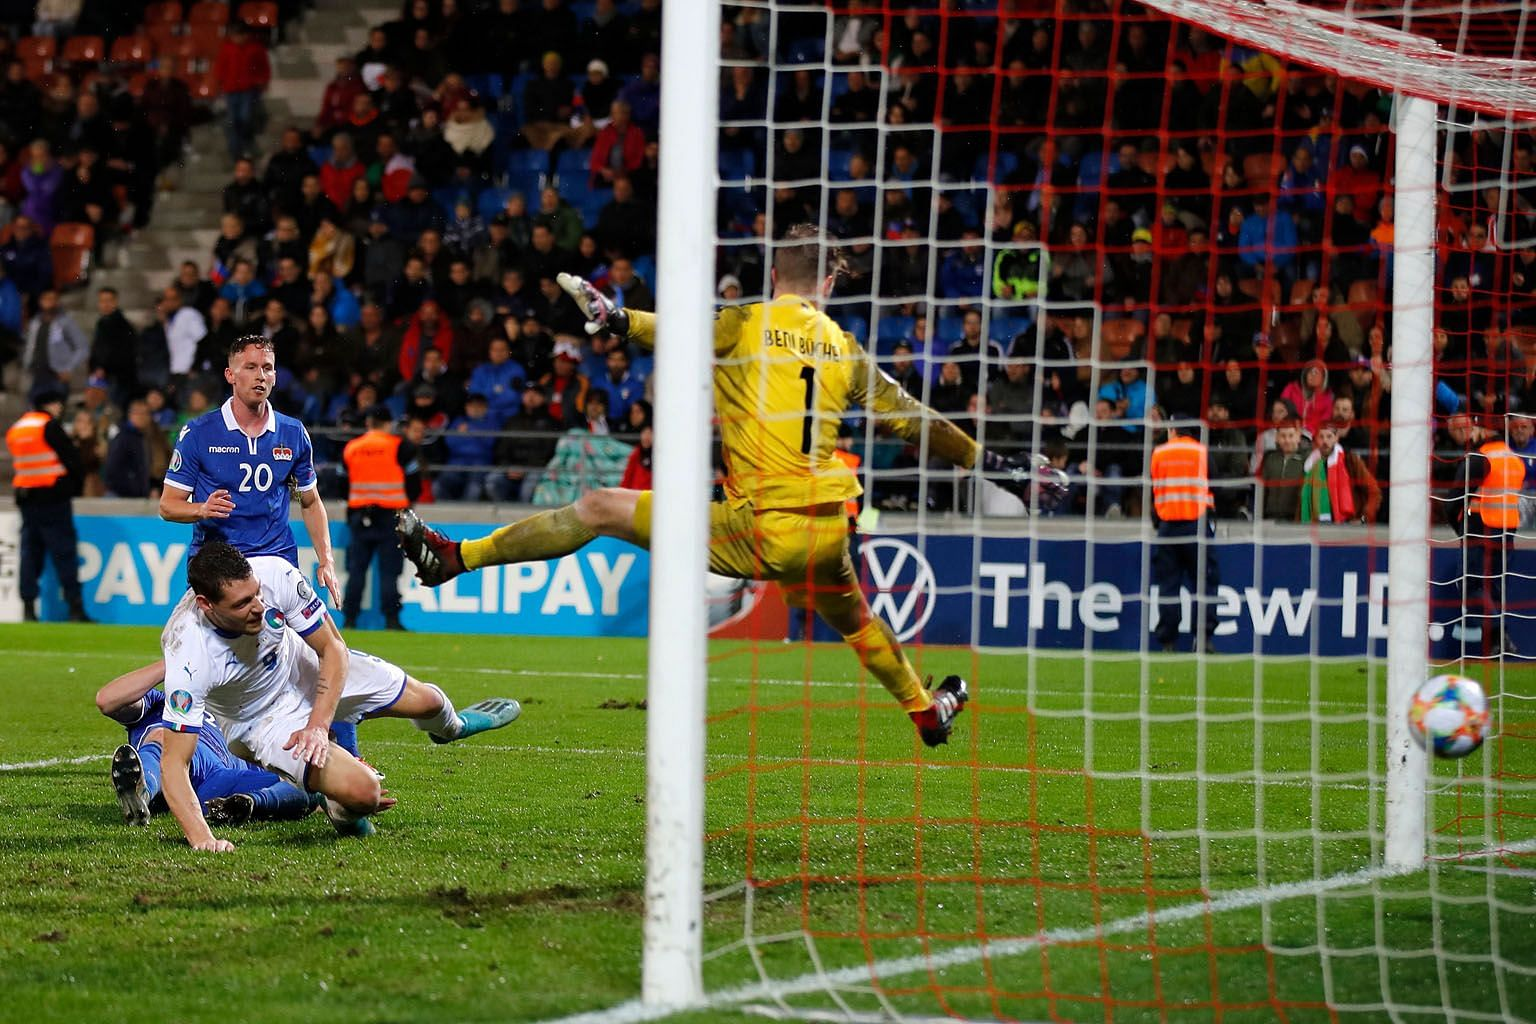 Italy's Andrea Belotti (in white) heading in one of his two goals in the 5-0 Euro 2020 qualifying win over Liechtenstein on Tuesday. It was the Italians' ninth win in a row, having won all eight of their qualifiers. PHOTO: AGENCE FRANCE-PRESSE